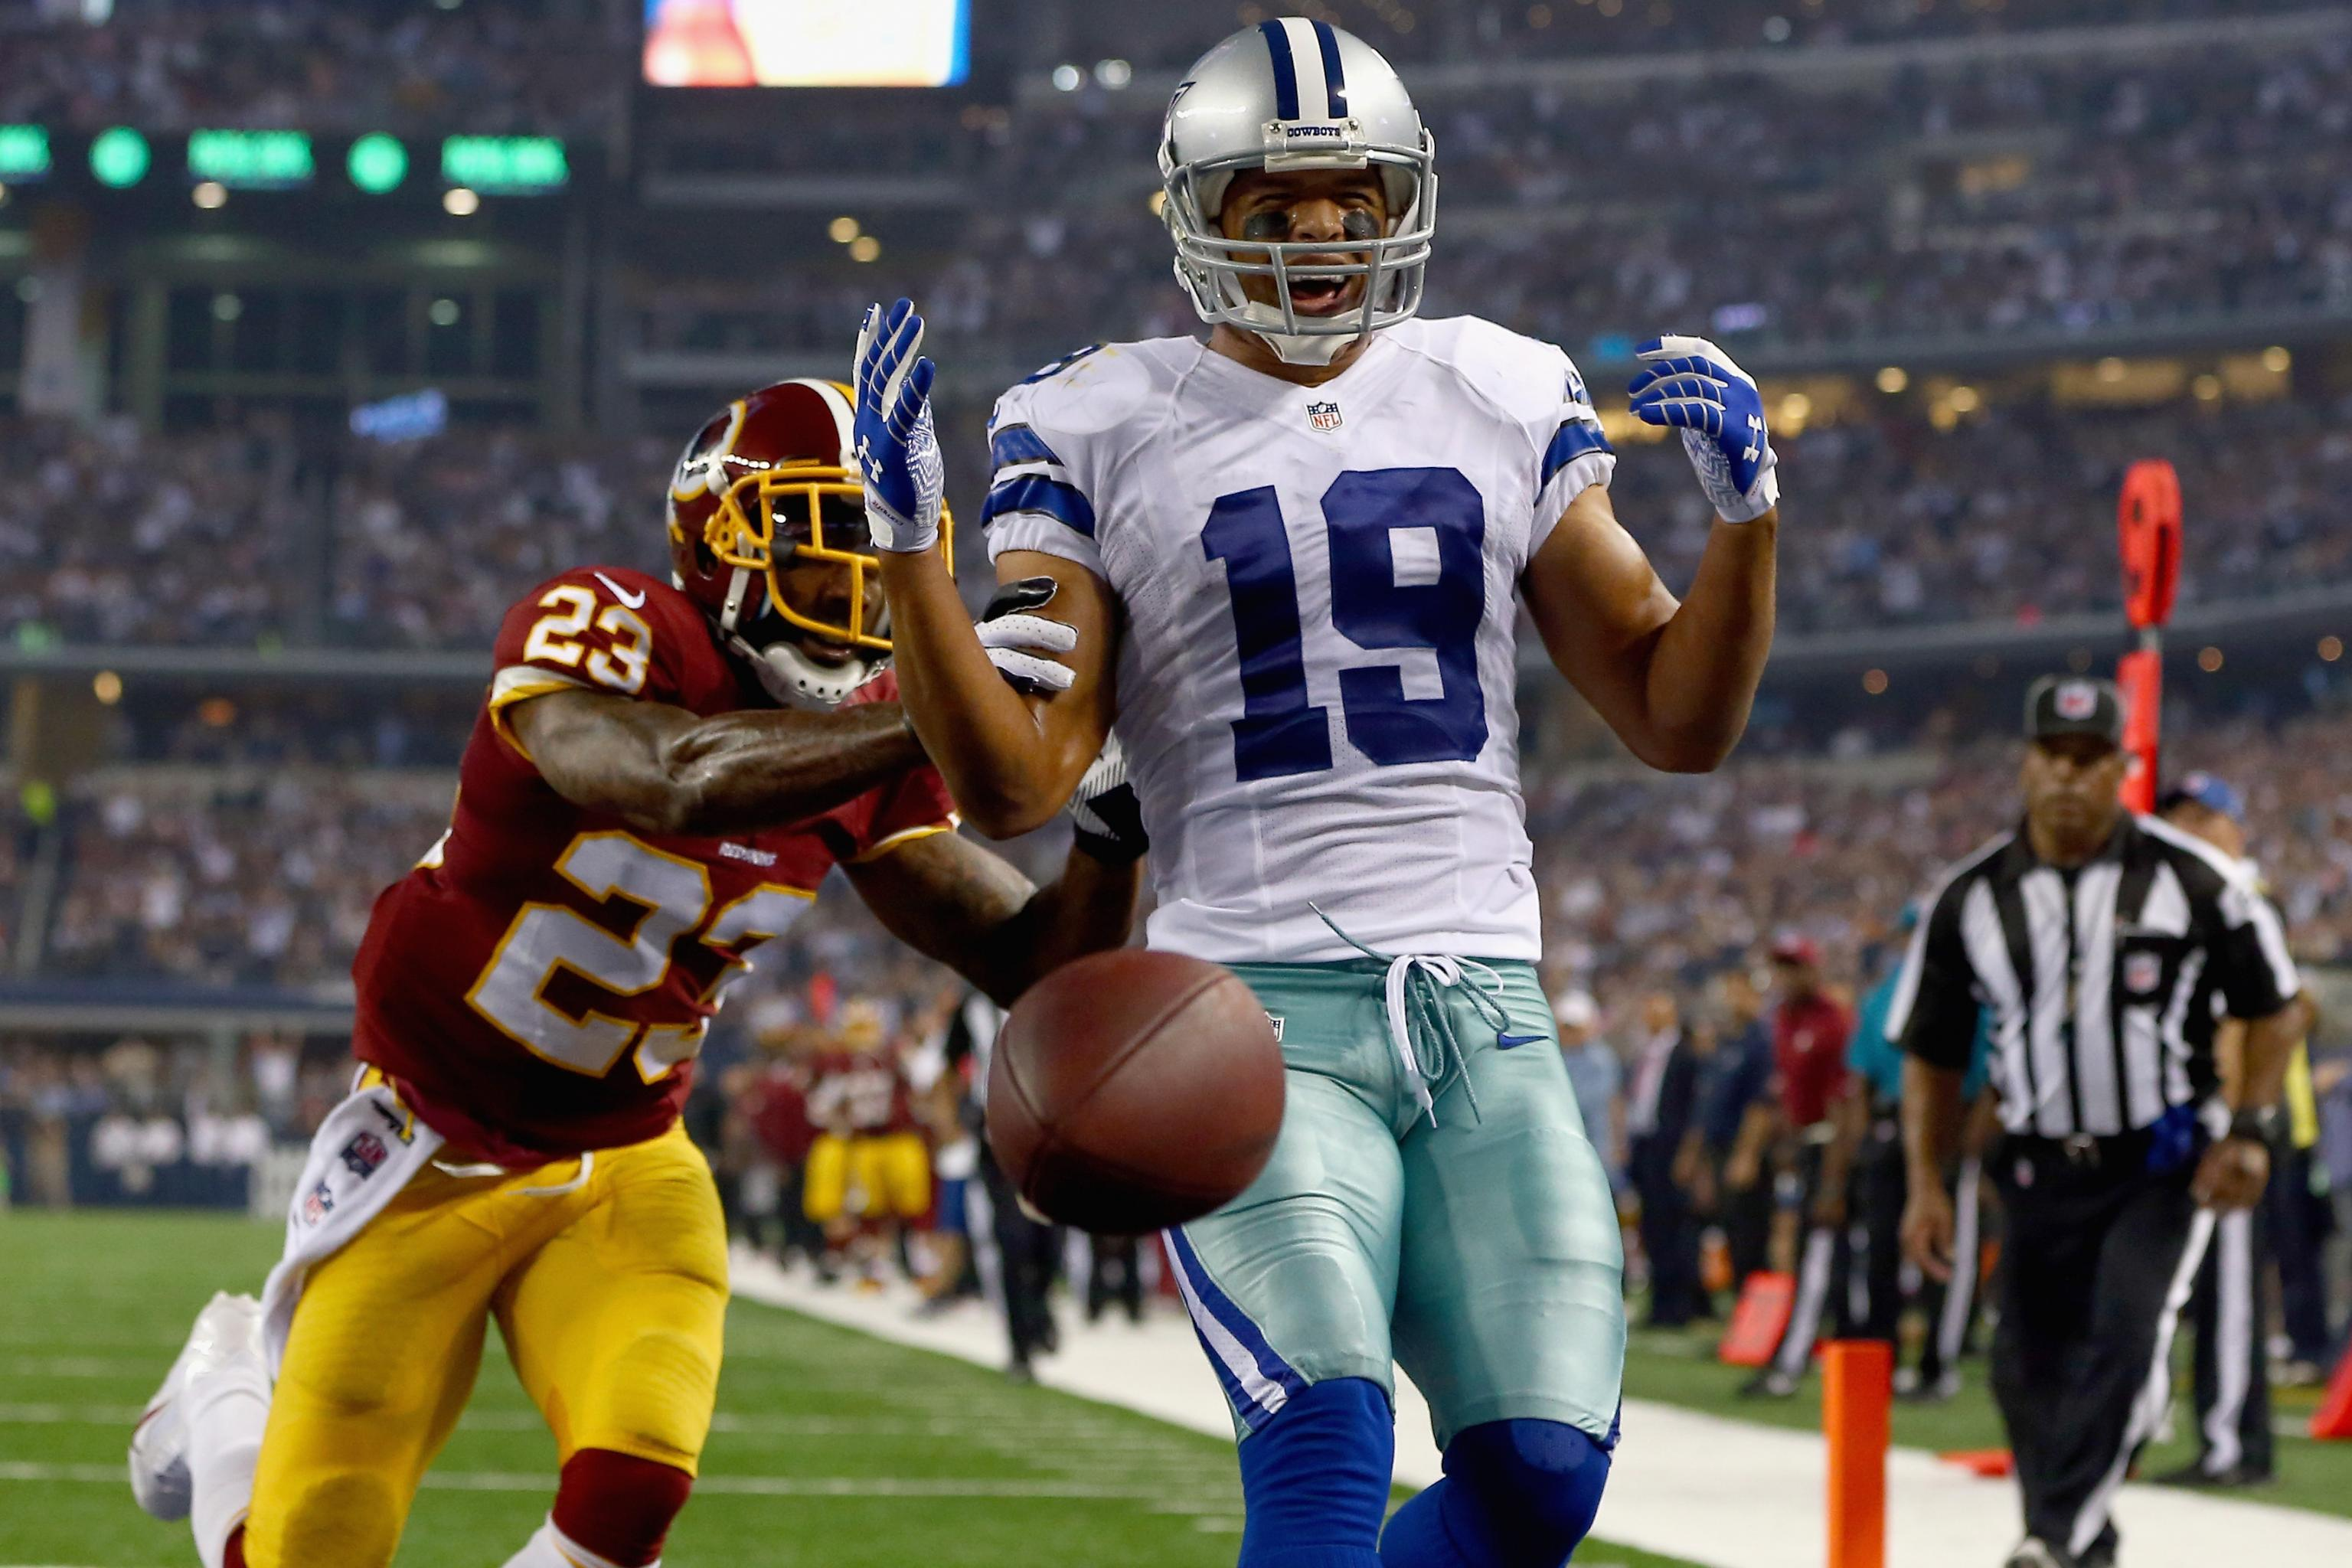 Redskins cowboys line betting on favorite wv sports betting sites